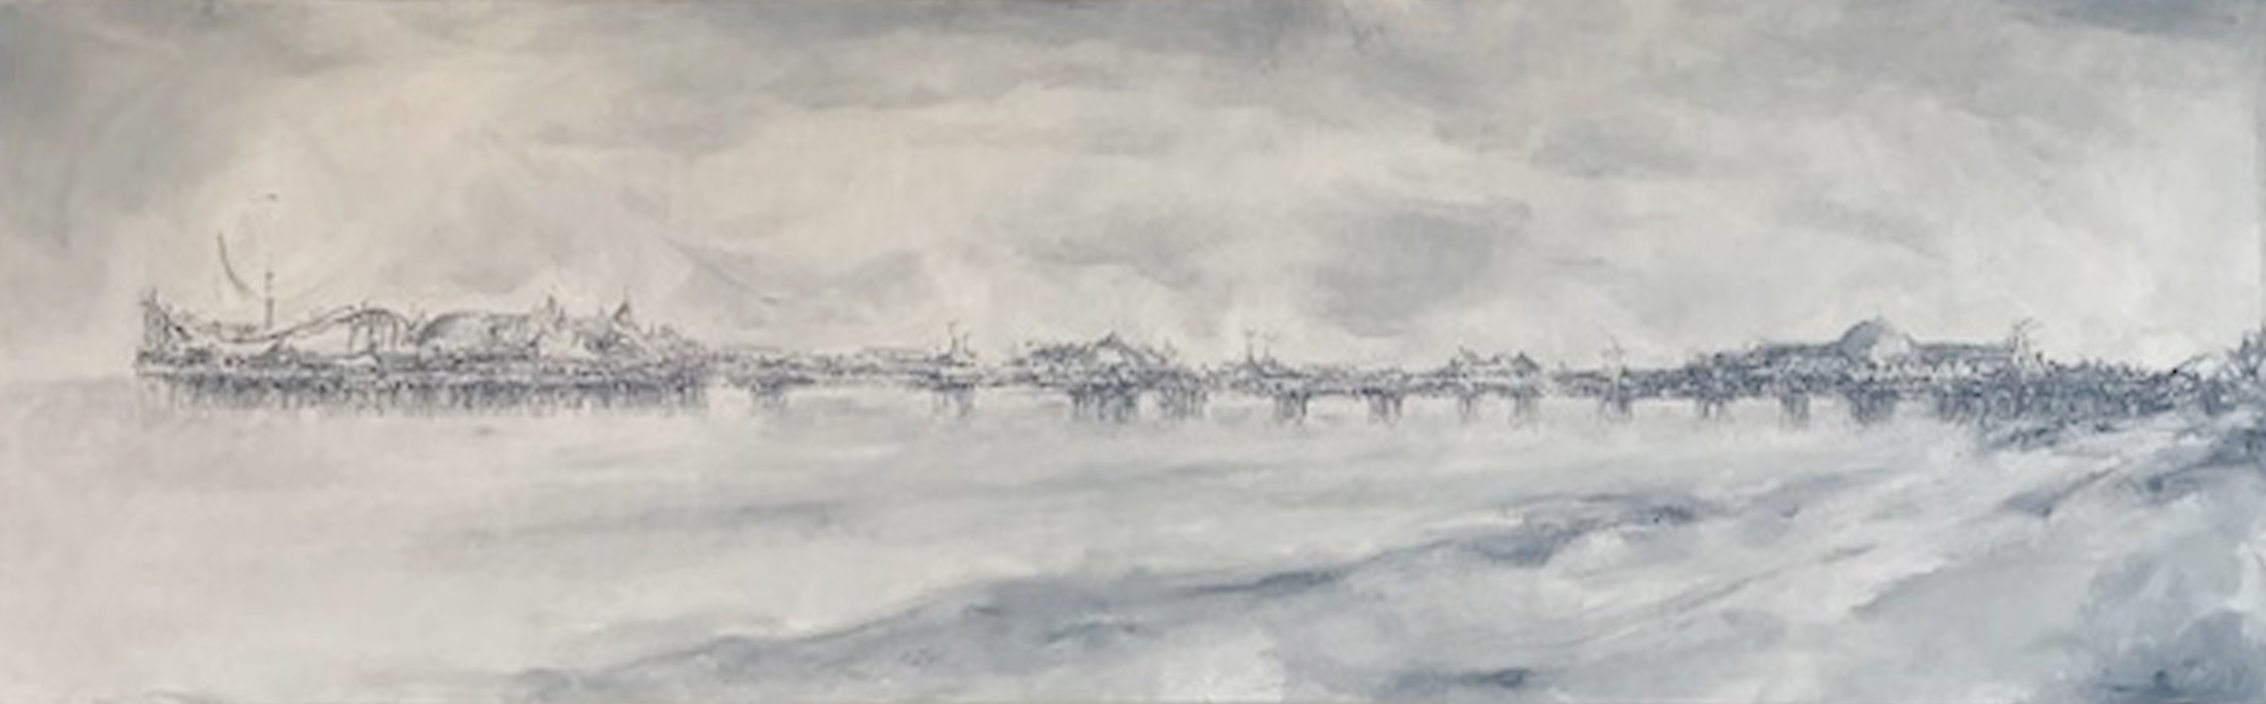 Artist: Solange Leon Irirate  Title: Light Day of Drifting Blue  Size: 30 x 100 cm  Medium: Oil on canvas  Price: £1250